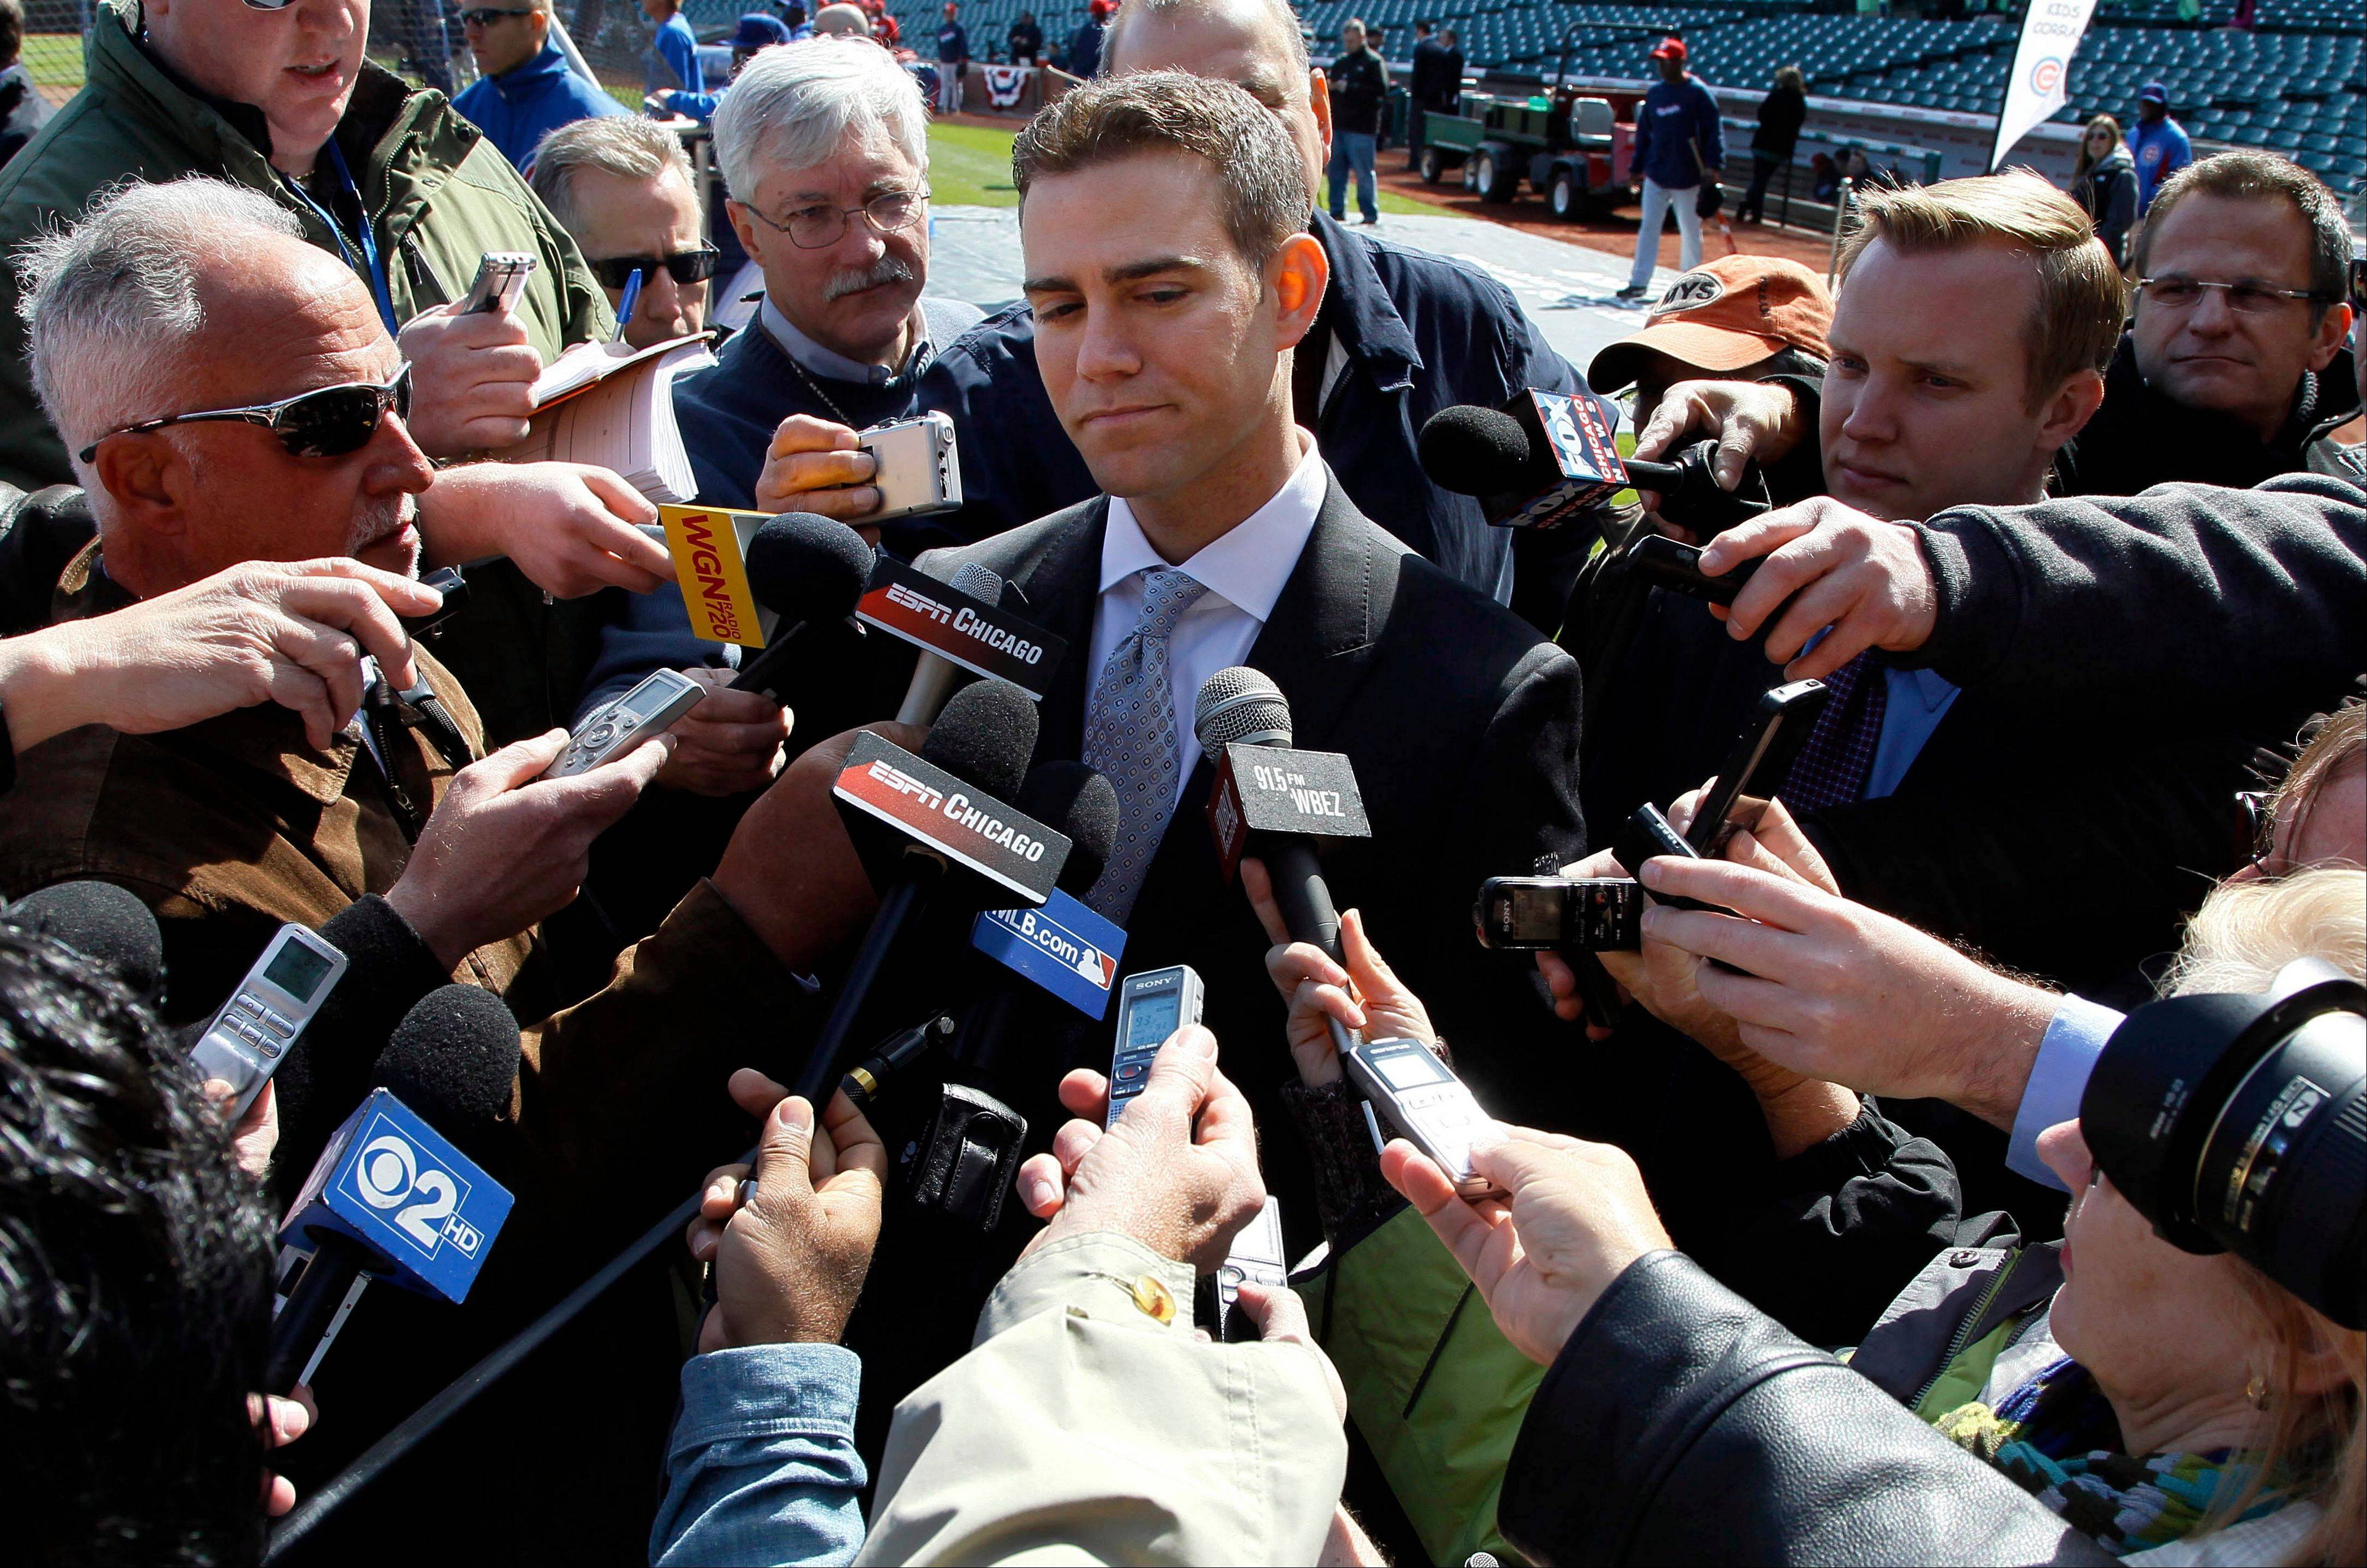 For now, media interviews with managerial prospects won't be part of the search process, according to Cubs president Theo Epstein, center. In 2011, managerial candidates were paraded before Chicago media to see how they could handle a news conference.